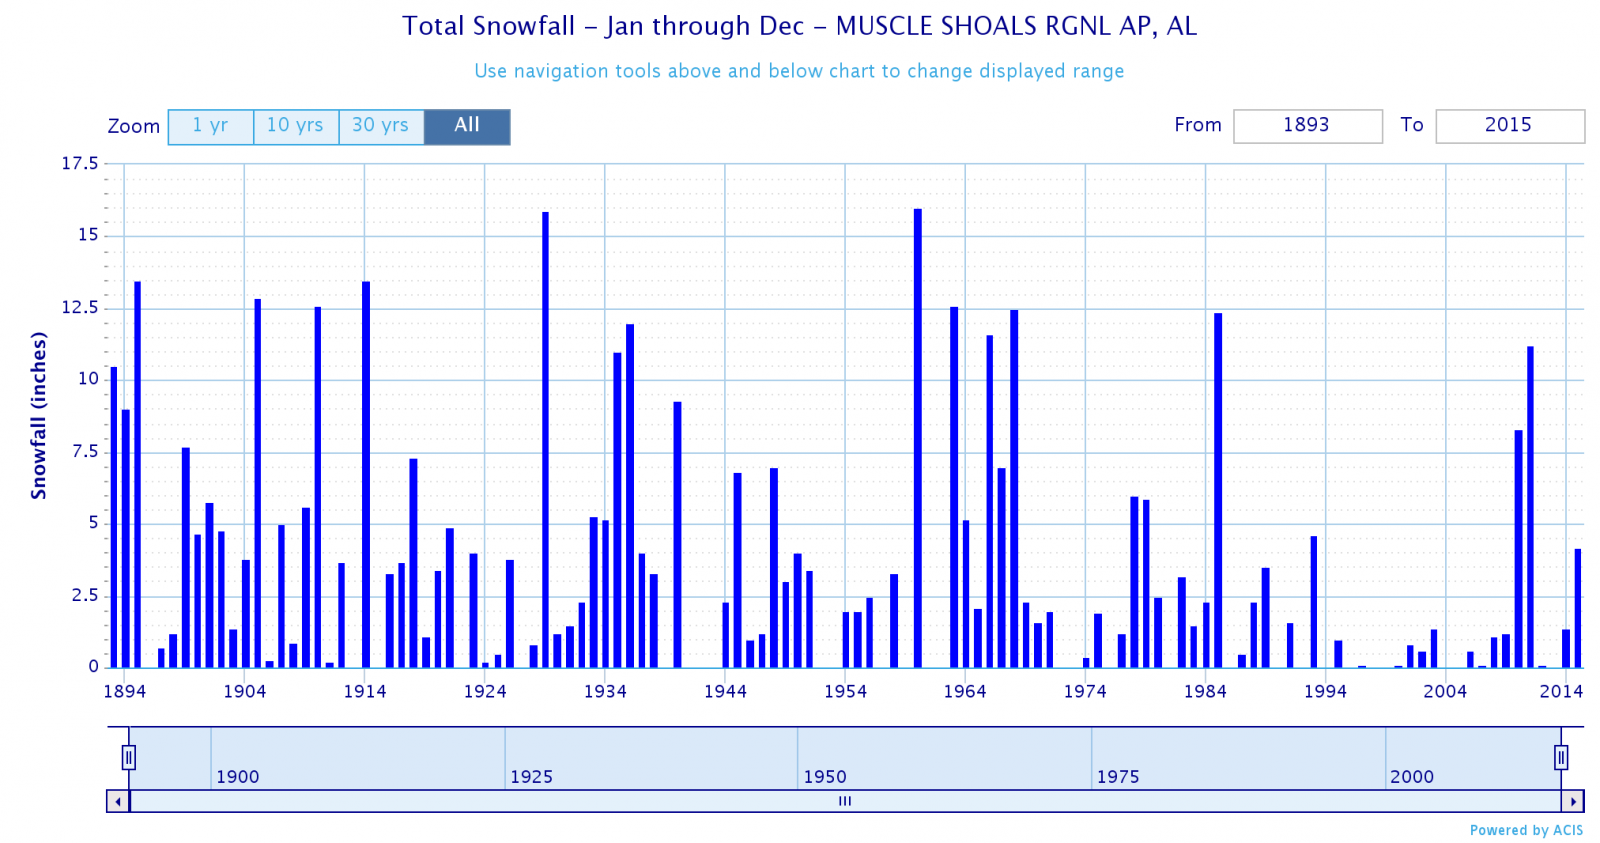 Muscle Shoals Annual Winter Snowfall Chart